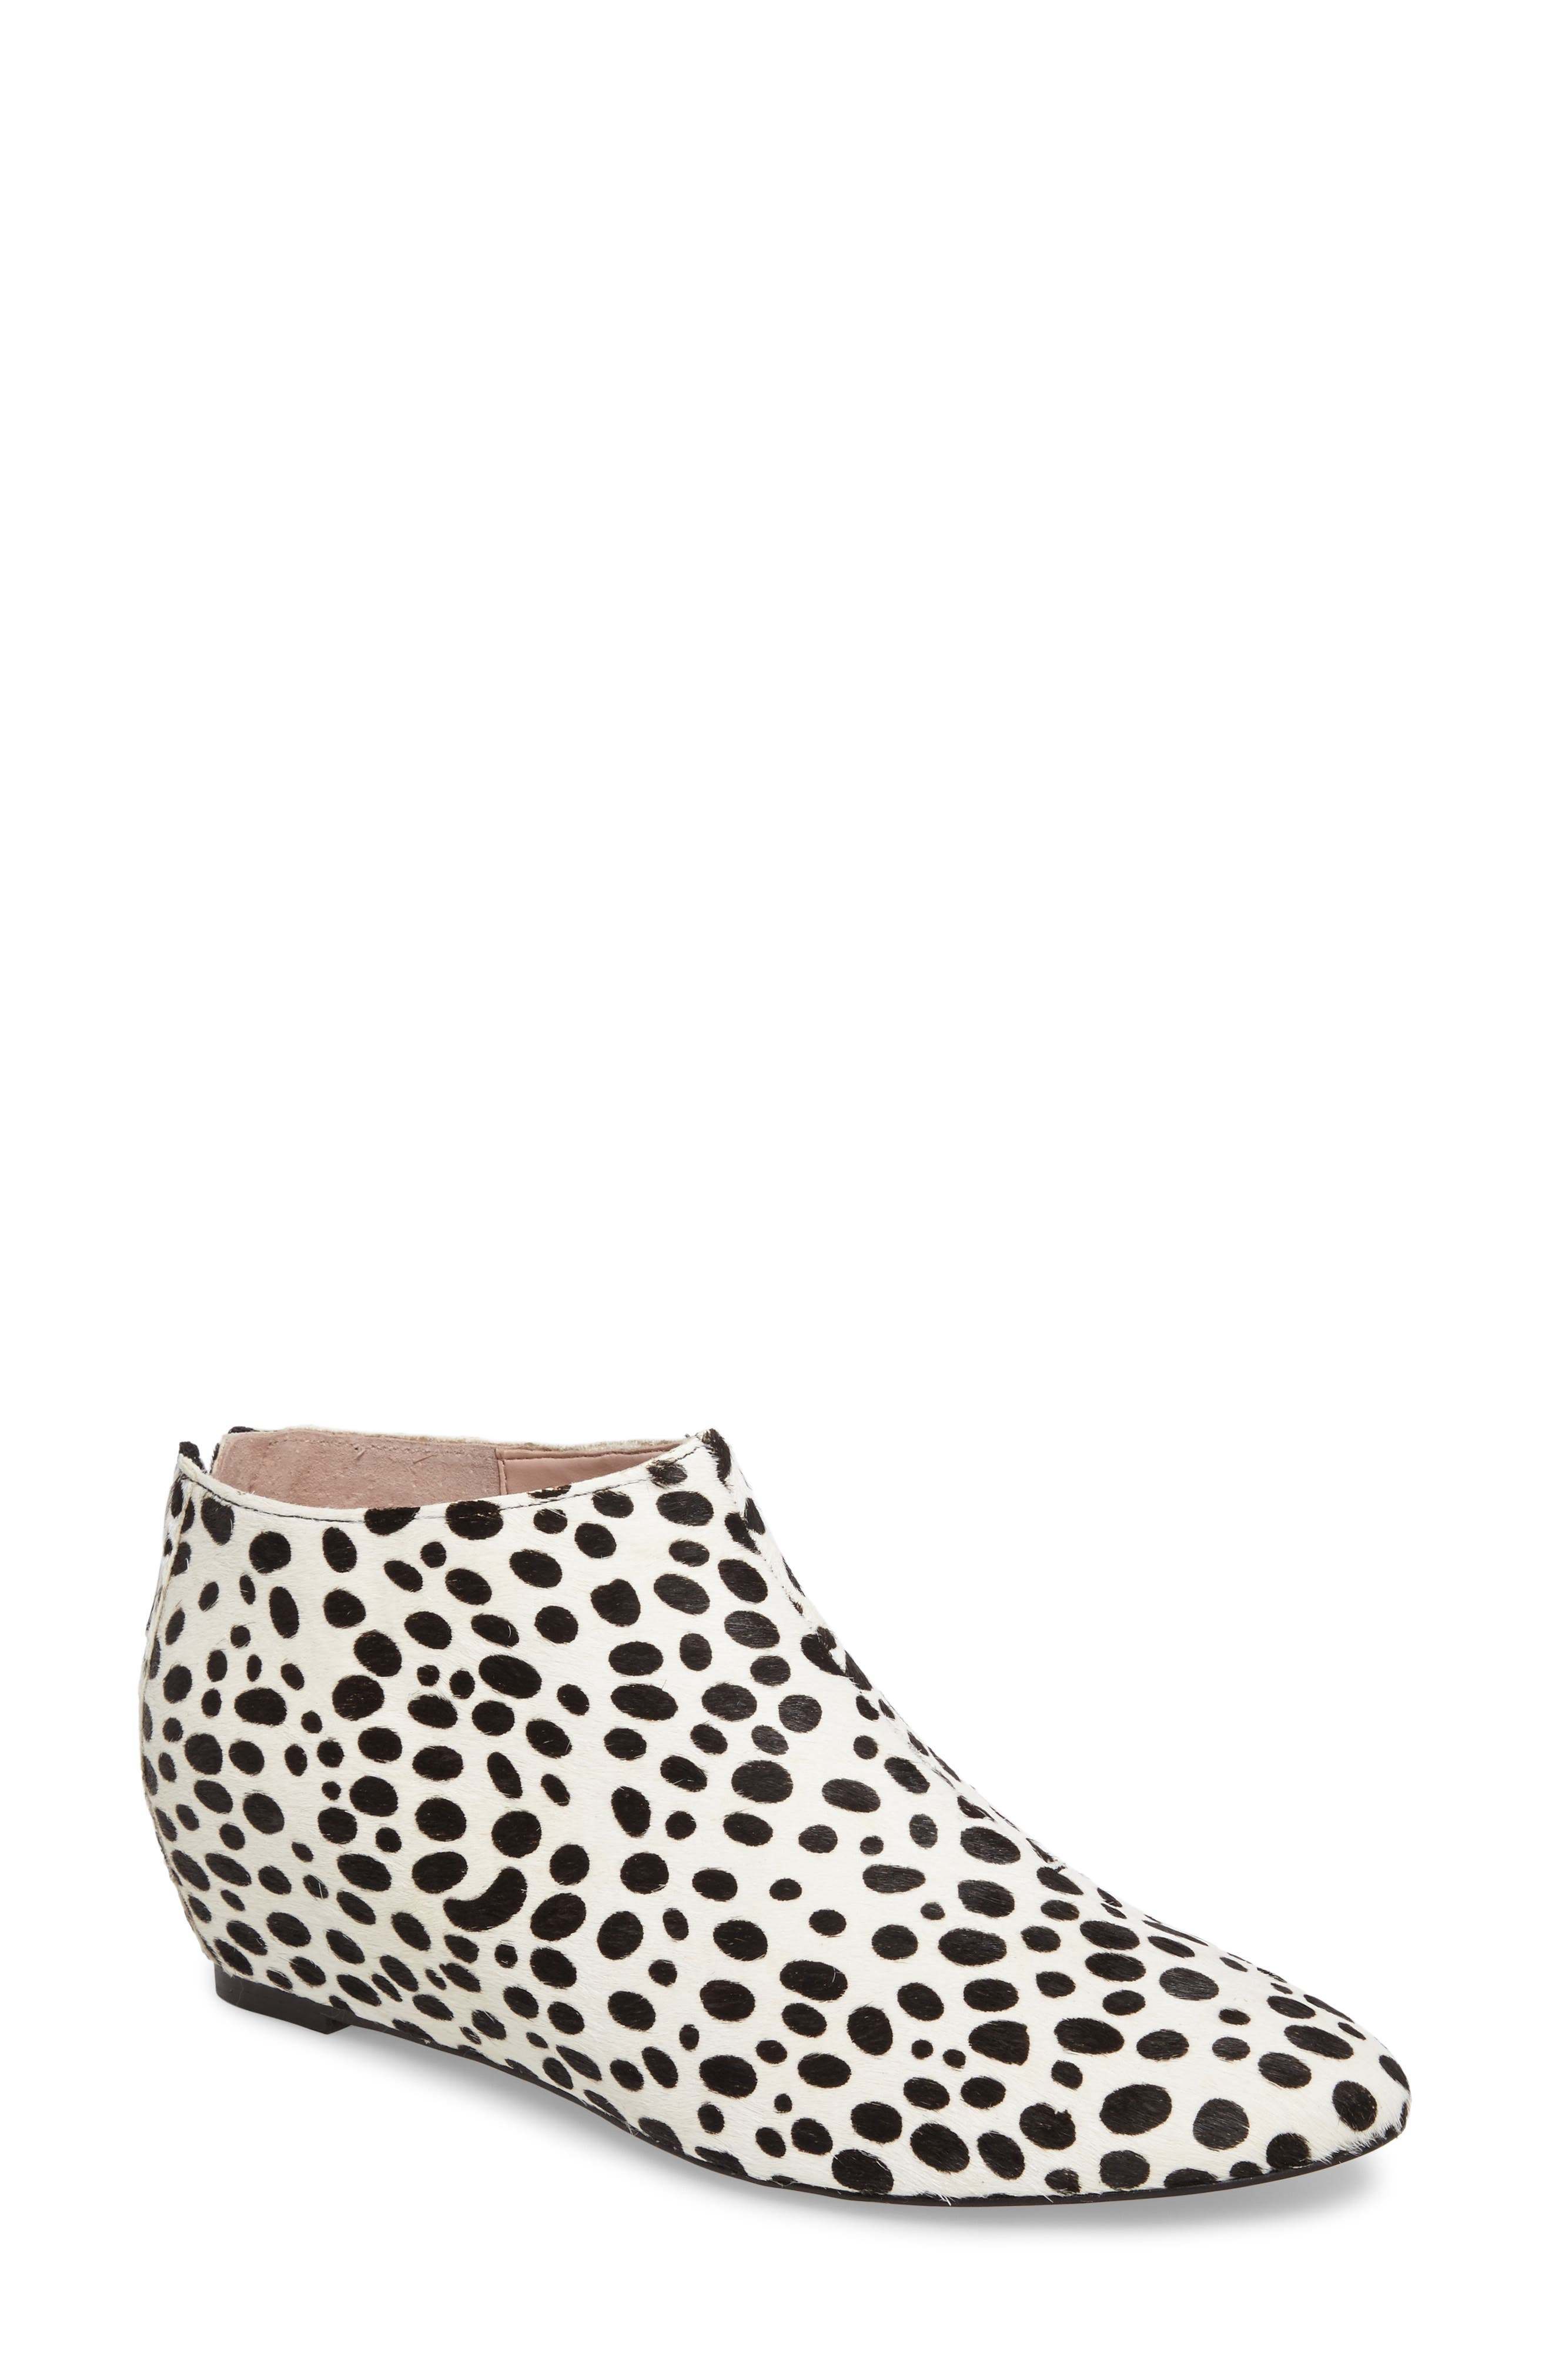 Main Image - Aves Les Filles Beatrice Ankle Boot (Women)